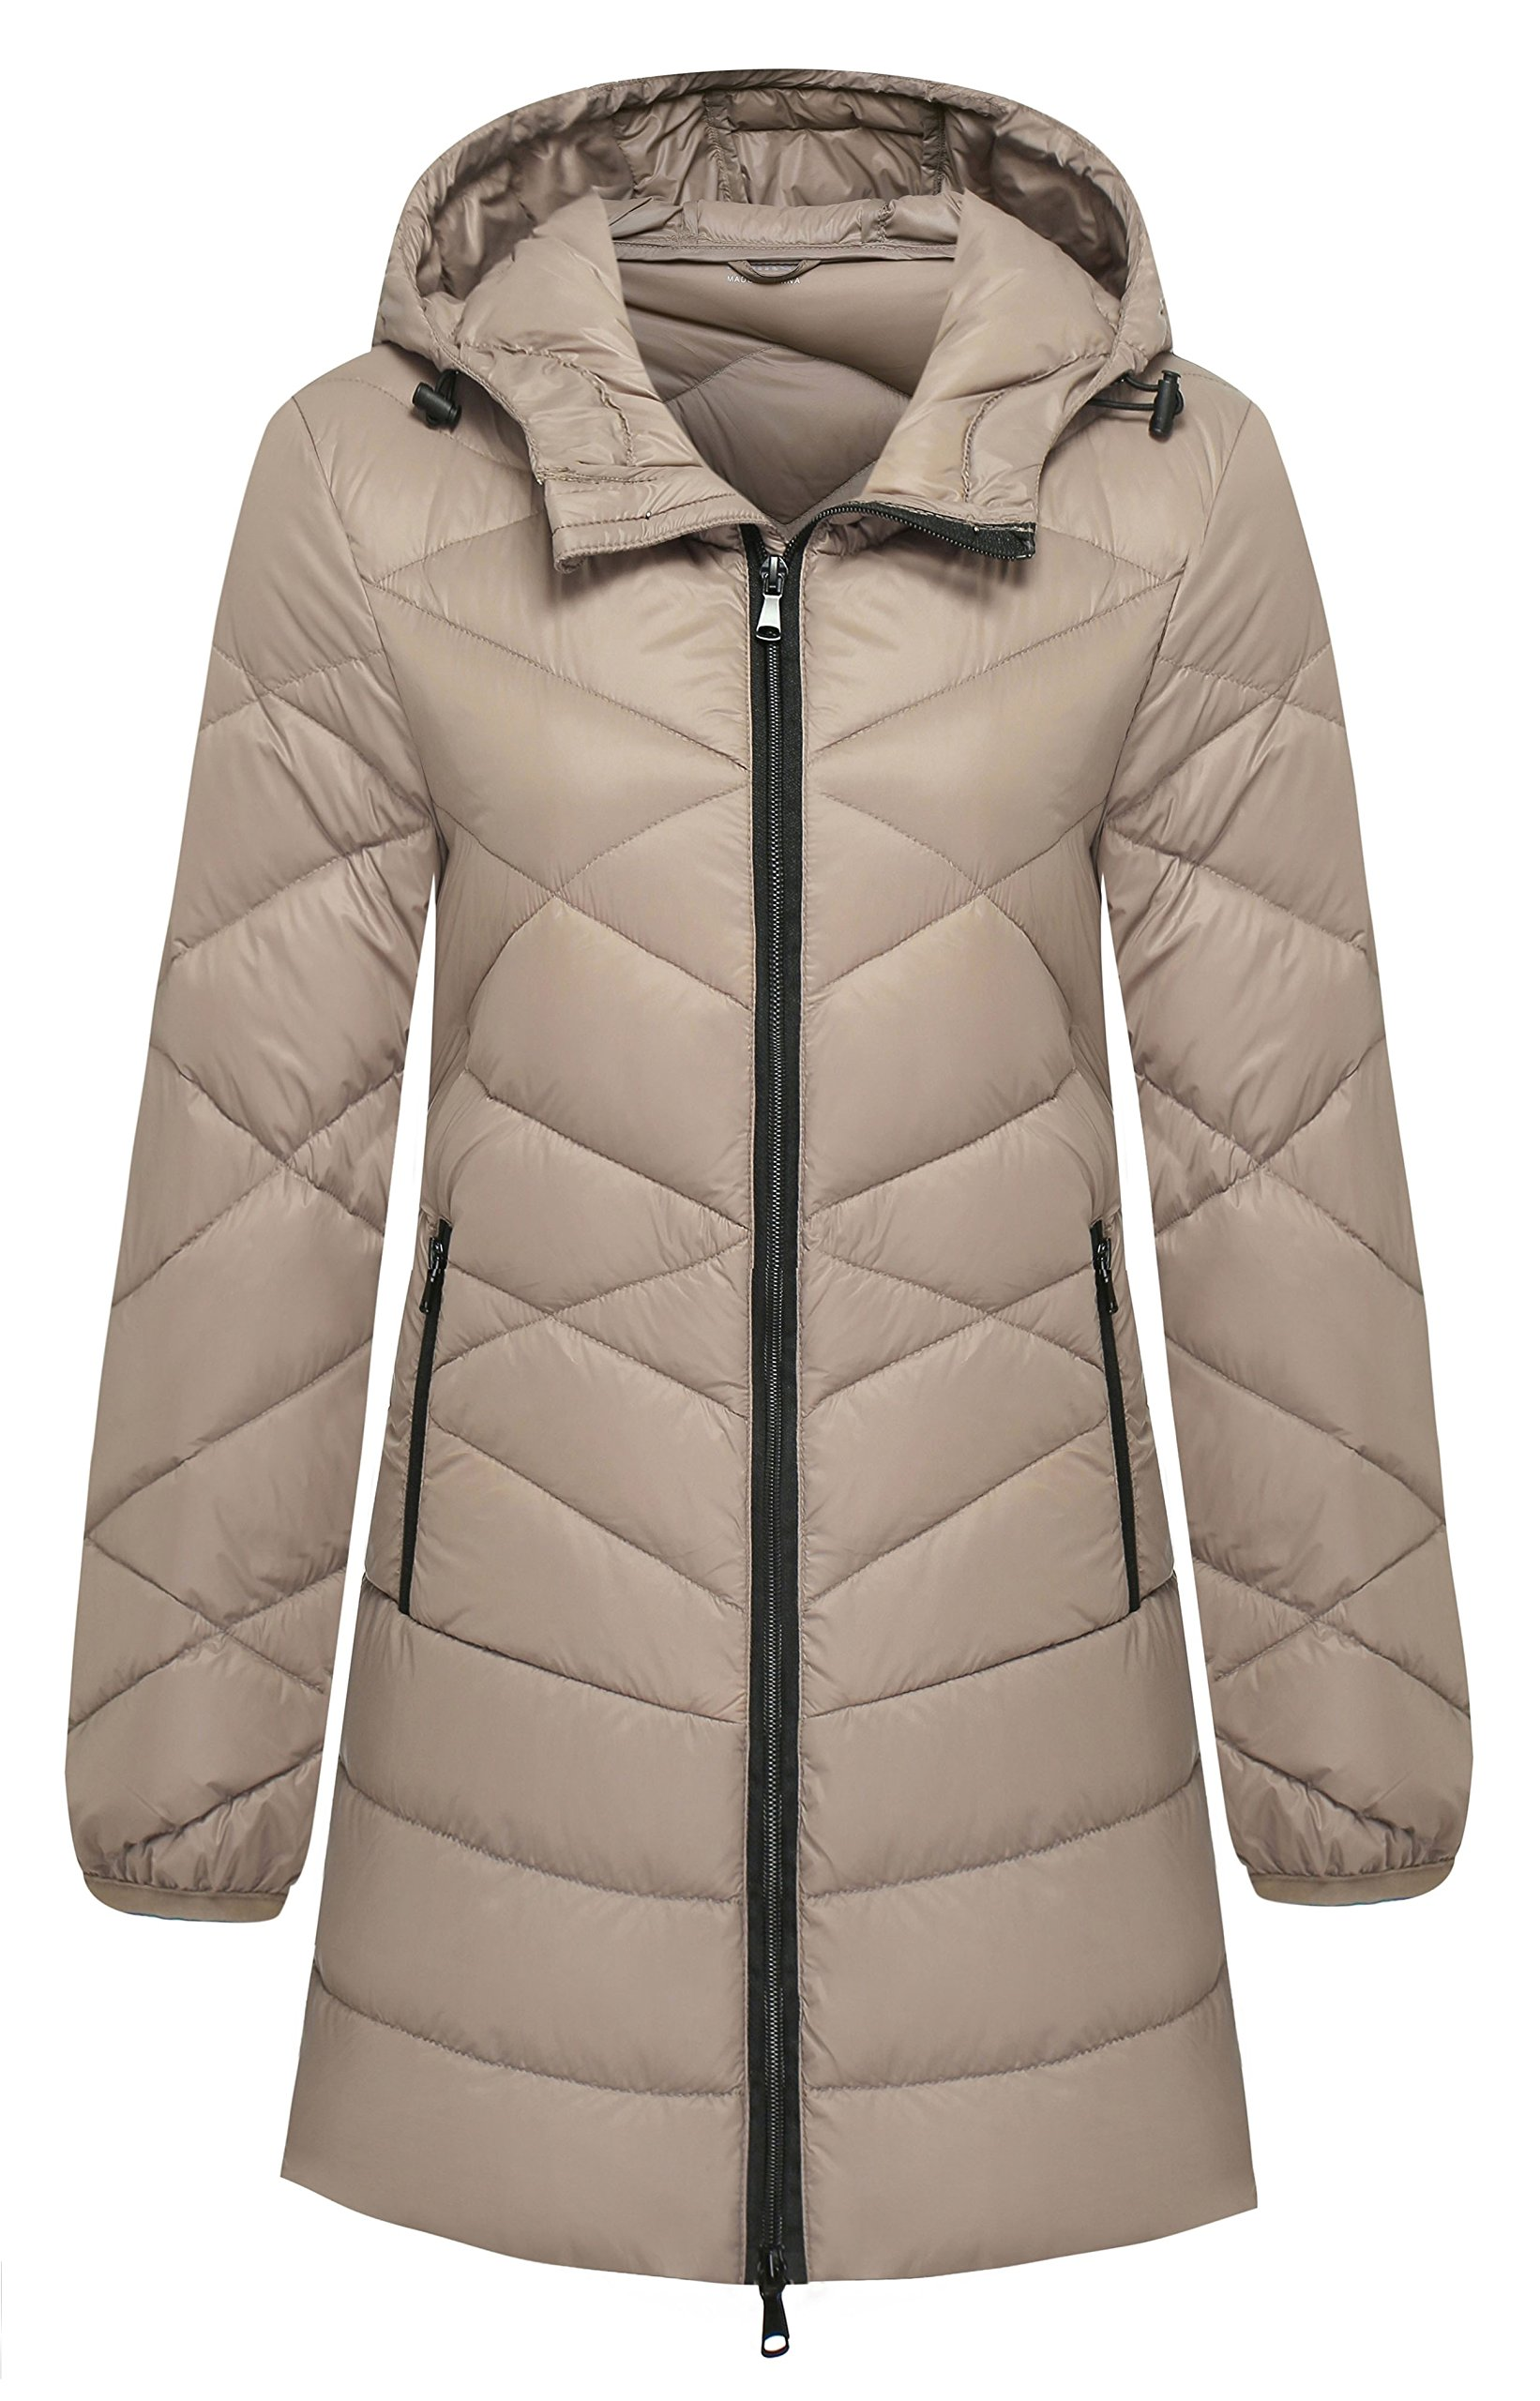 Wantdo Women's Hooded Packable Ultra Light Weight Down Jacket, Khaki, Large